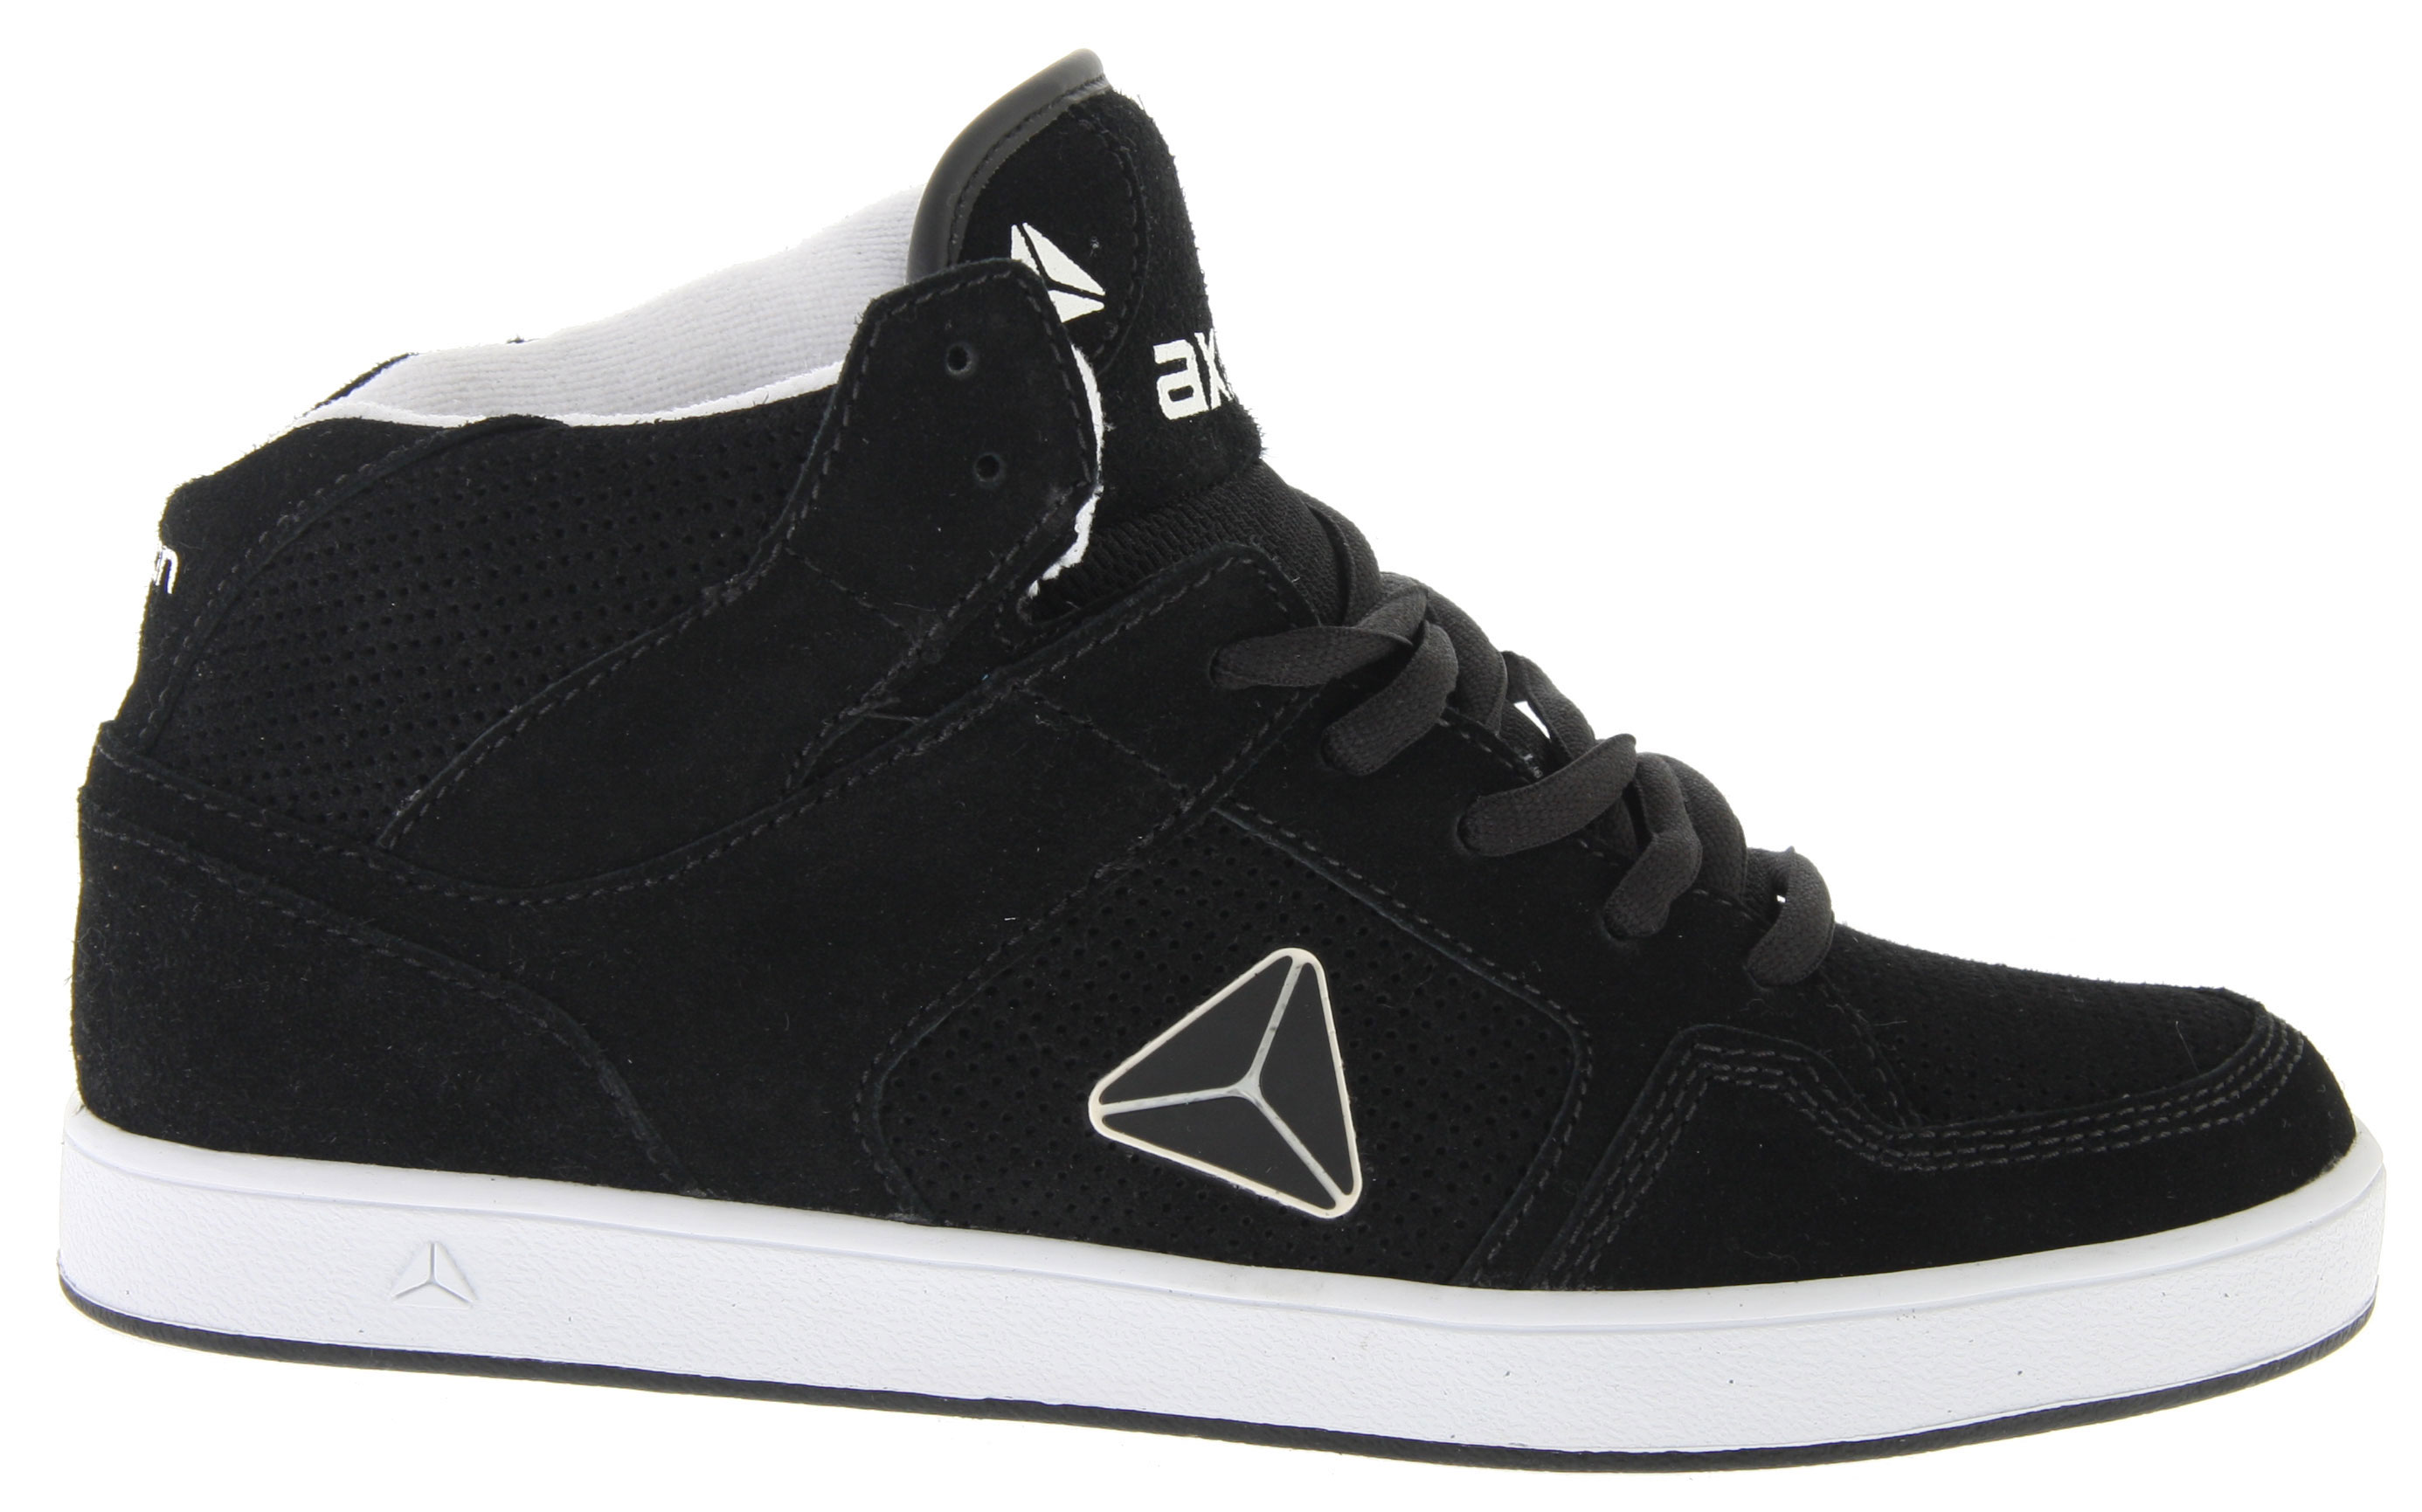 Skateboard The old school high-top flava of the Axion Atlas skate shoe features uppers of distressed action leather, action nubuck, or suede. It has a triple-stitched toecap for added durability. A padded tongue and collar are included for added comfort and support. The fabric lining helps wick away moisture. A super-cush footbed is added for long-lasting comfort. Finally the durable rubber outsole is there for added traction and long use-time. Time for sum AXION! - $41.95